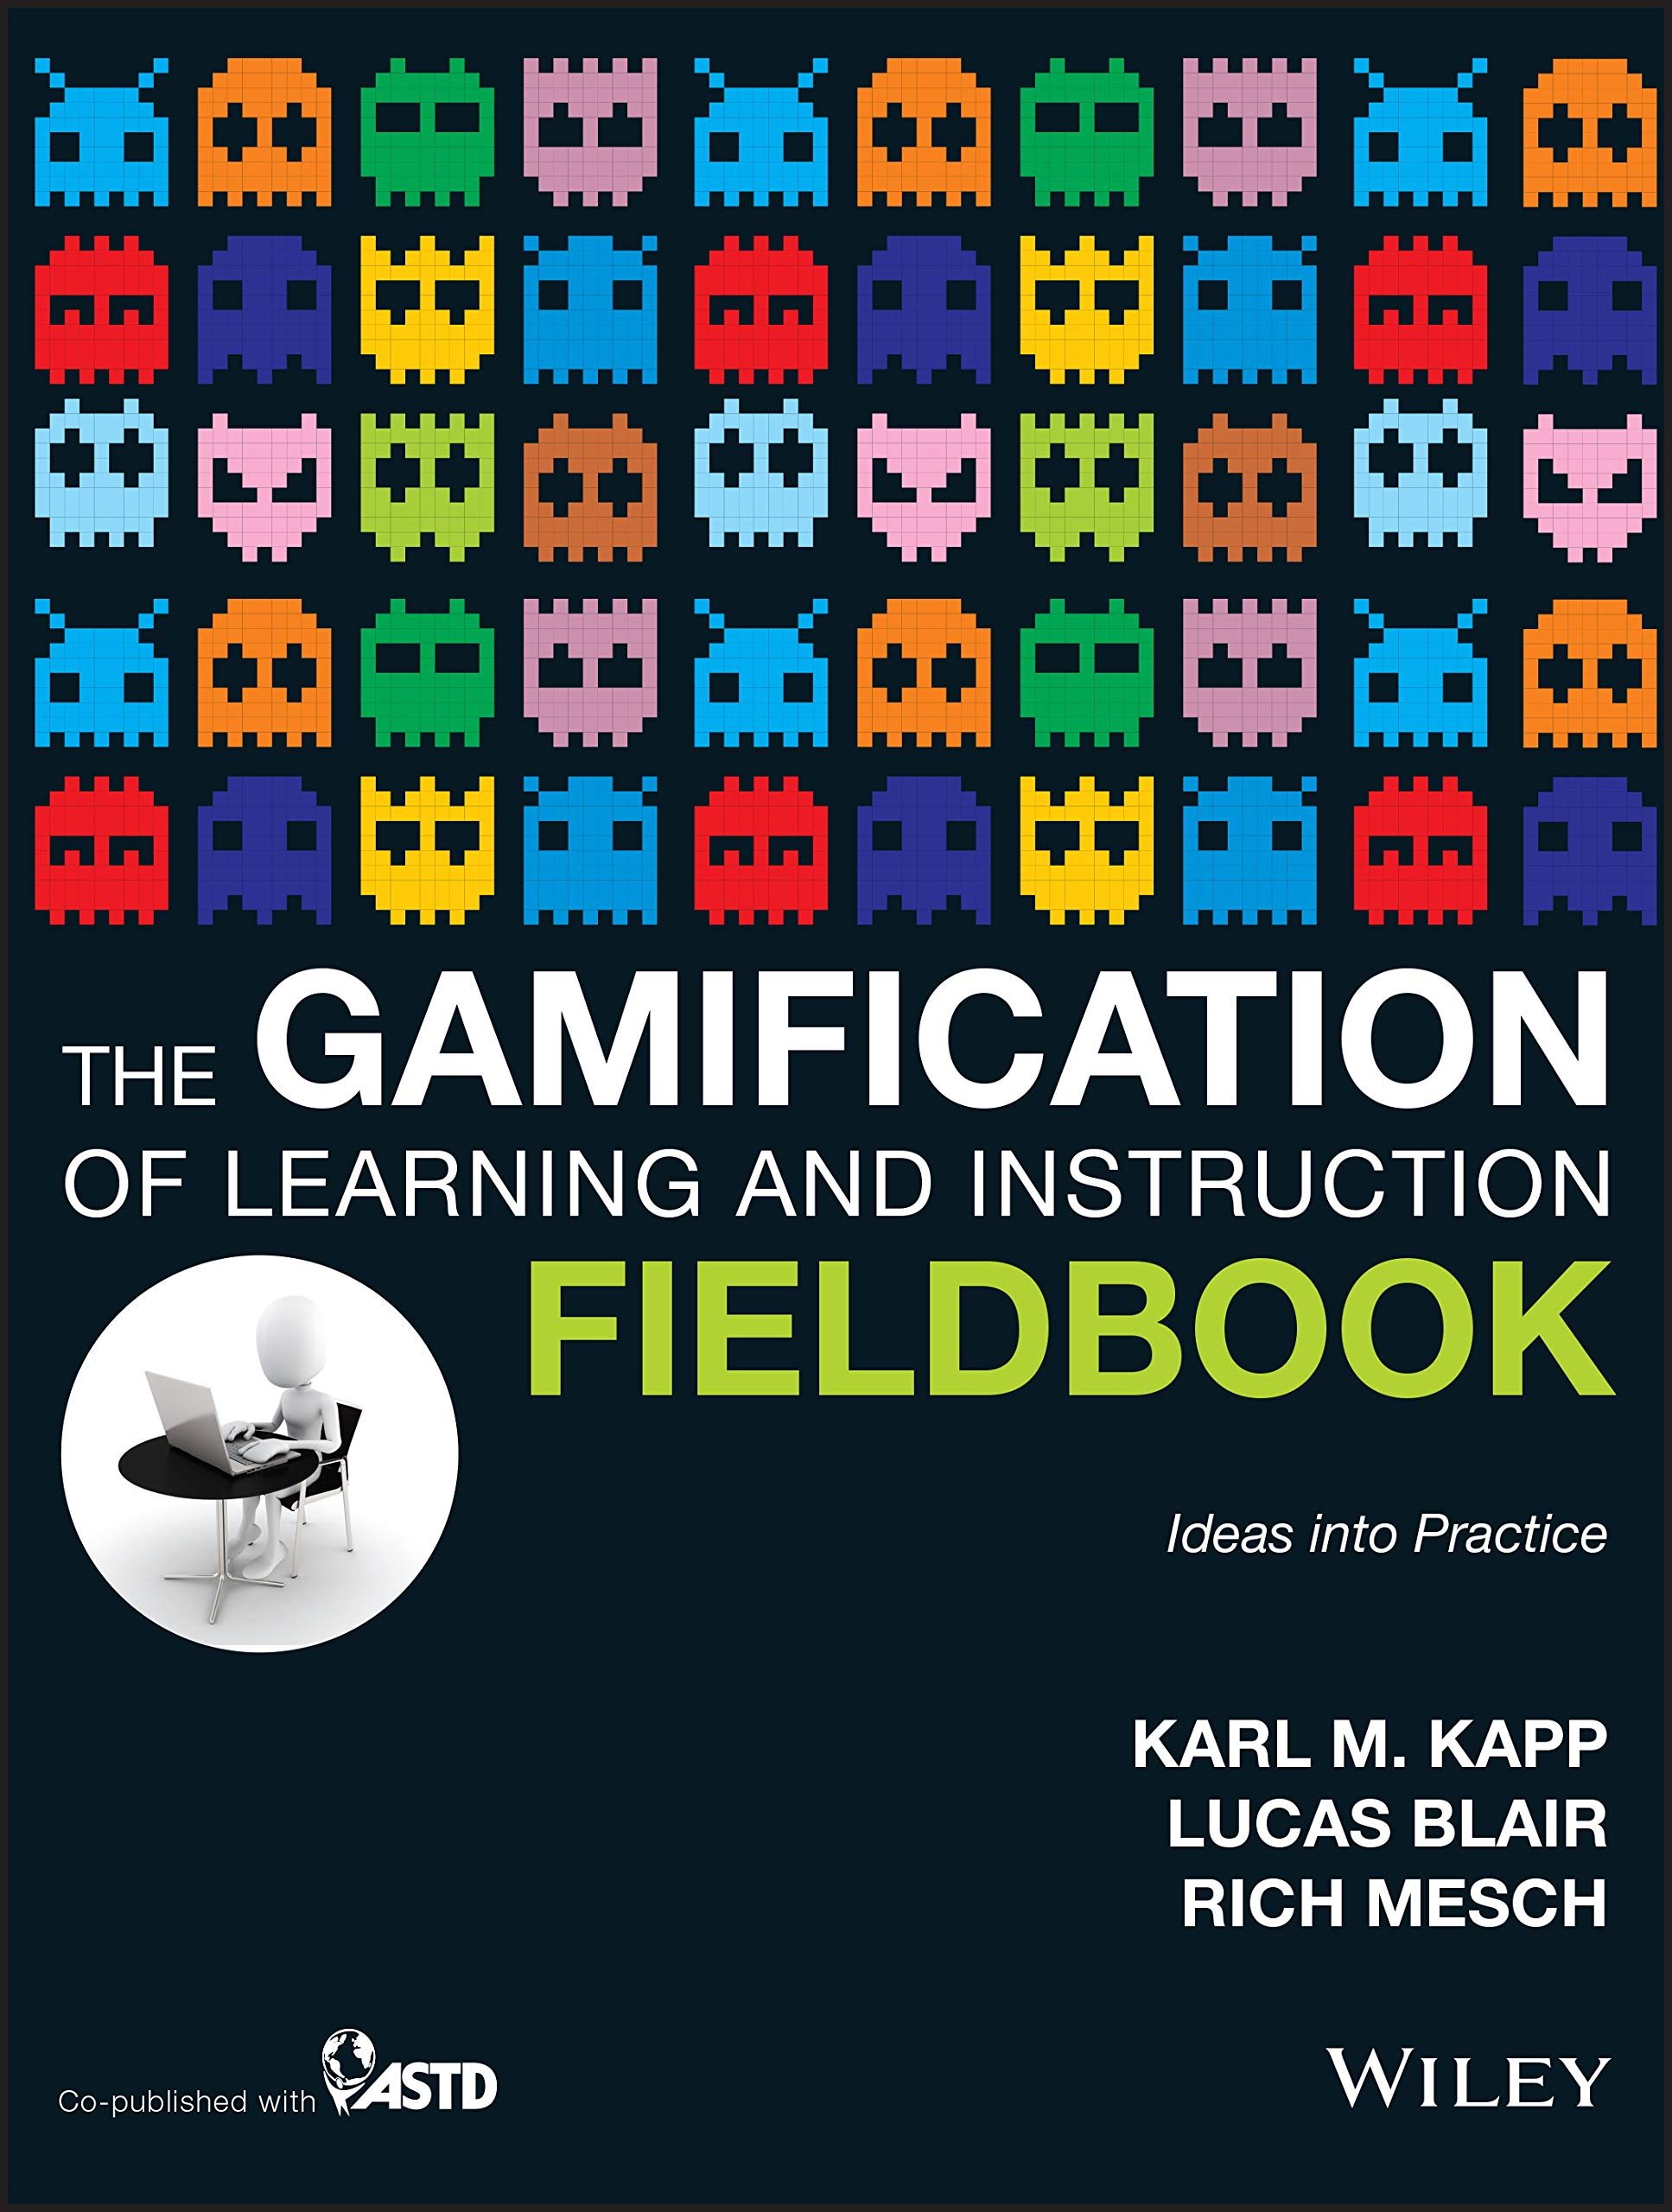 Image OfThe Gamification Of Learning And Instruction Fieldbook: Ideas Into Practice